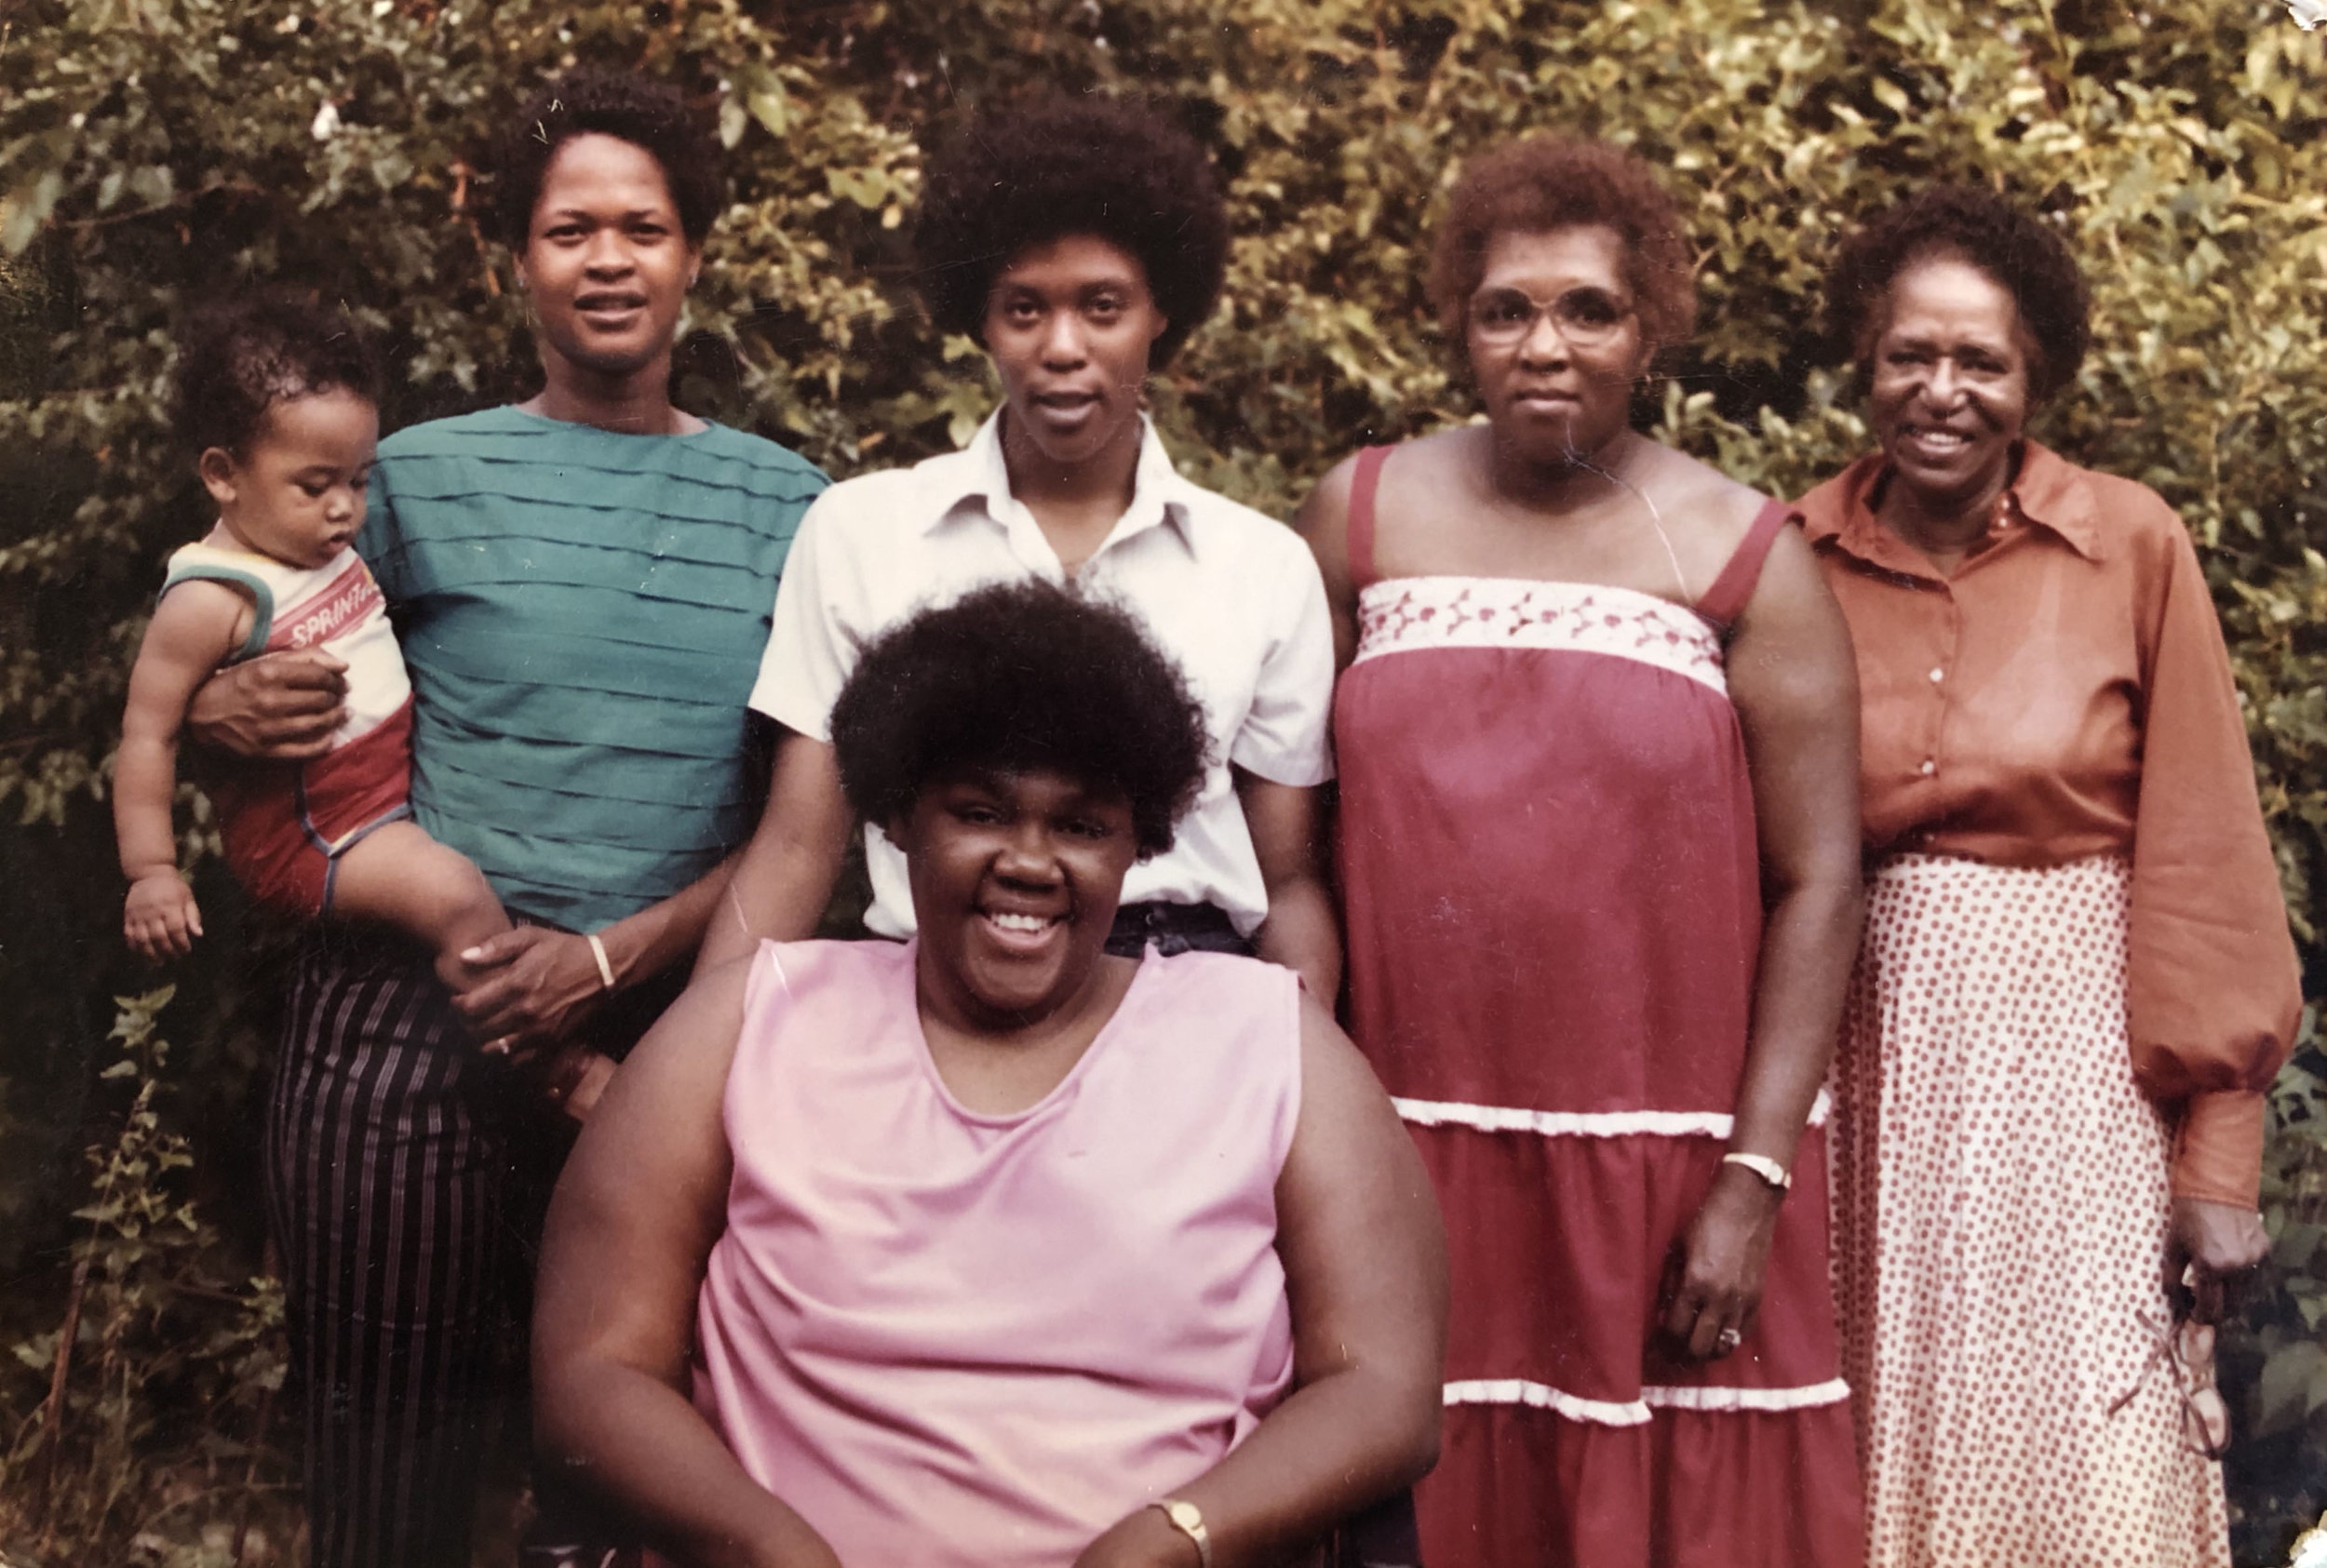 A portion of Carol Hardeman's family in the 1970s, including her sisters, her grandmother Odeal Franklin (far right), and mother Welzetta Hardeman (second to right). Courtesy of Carol Hardeman.